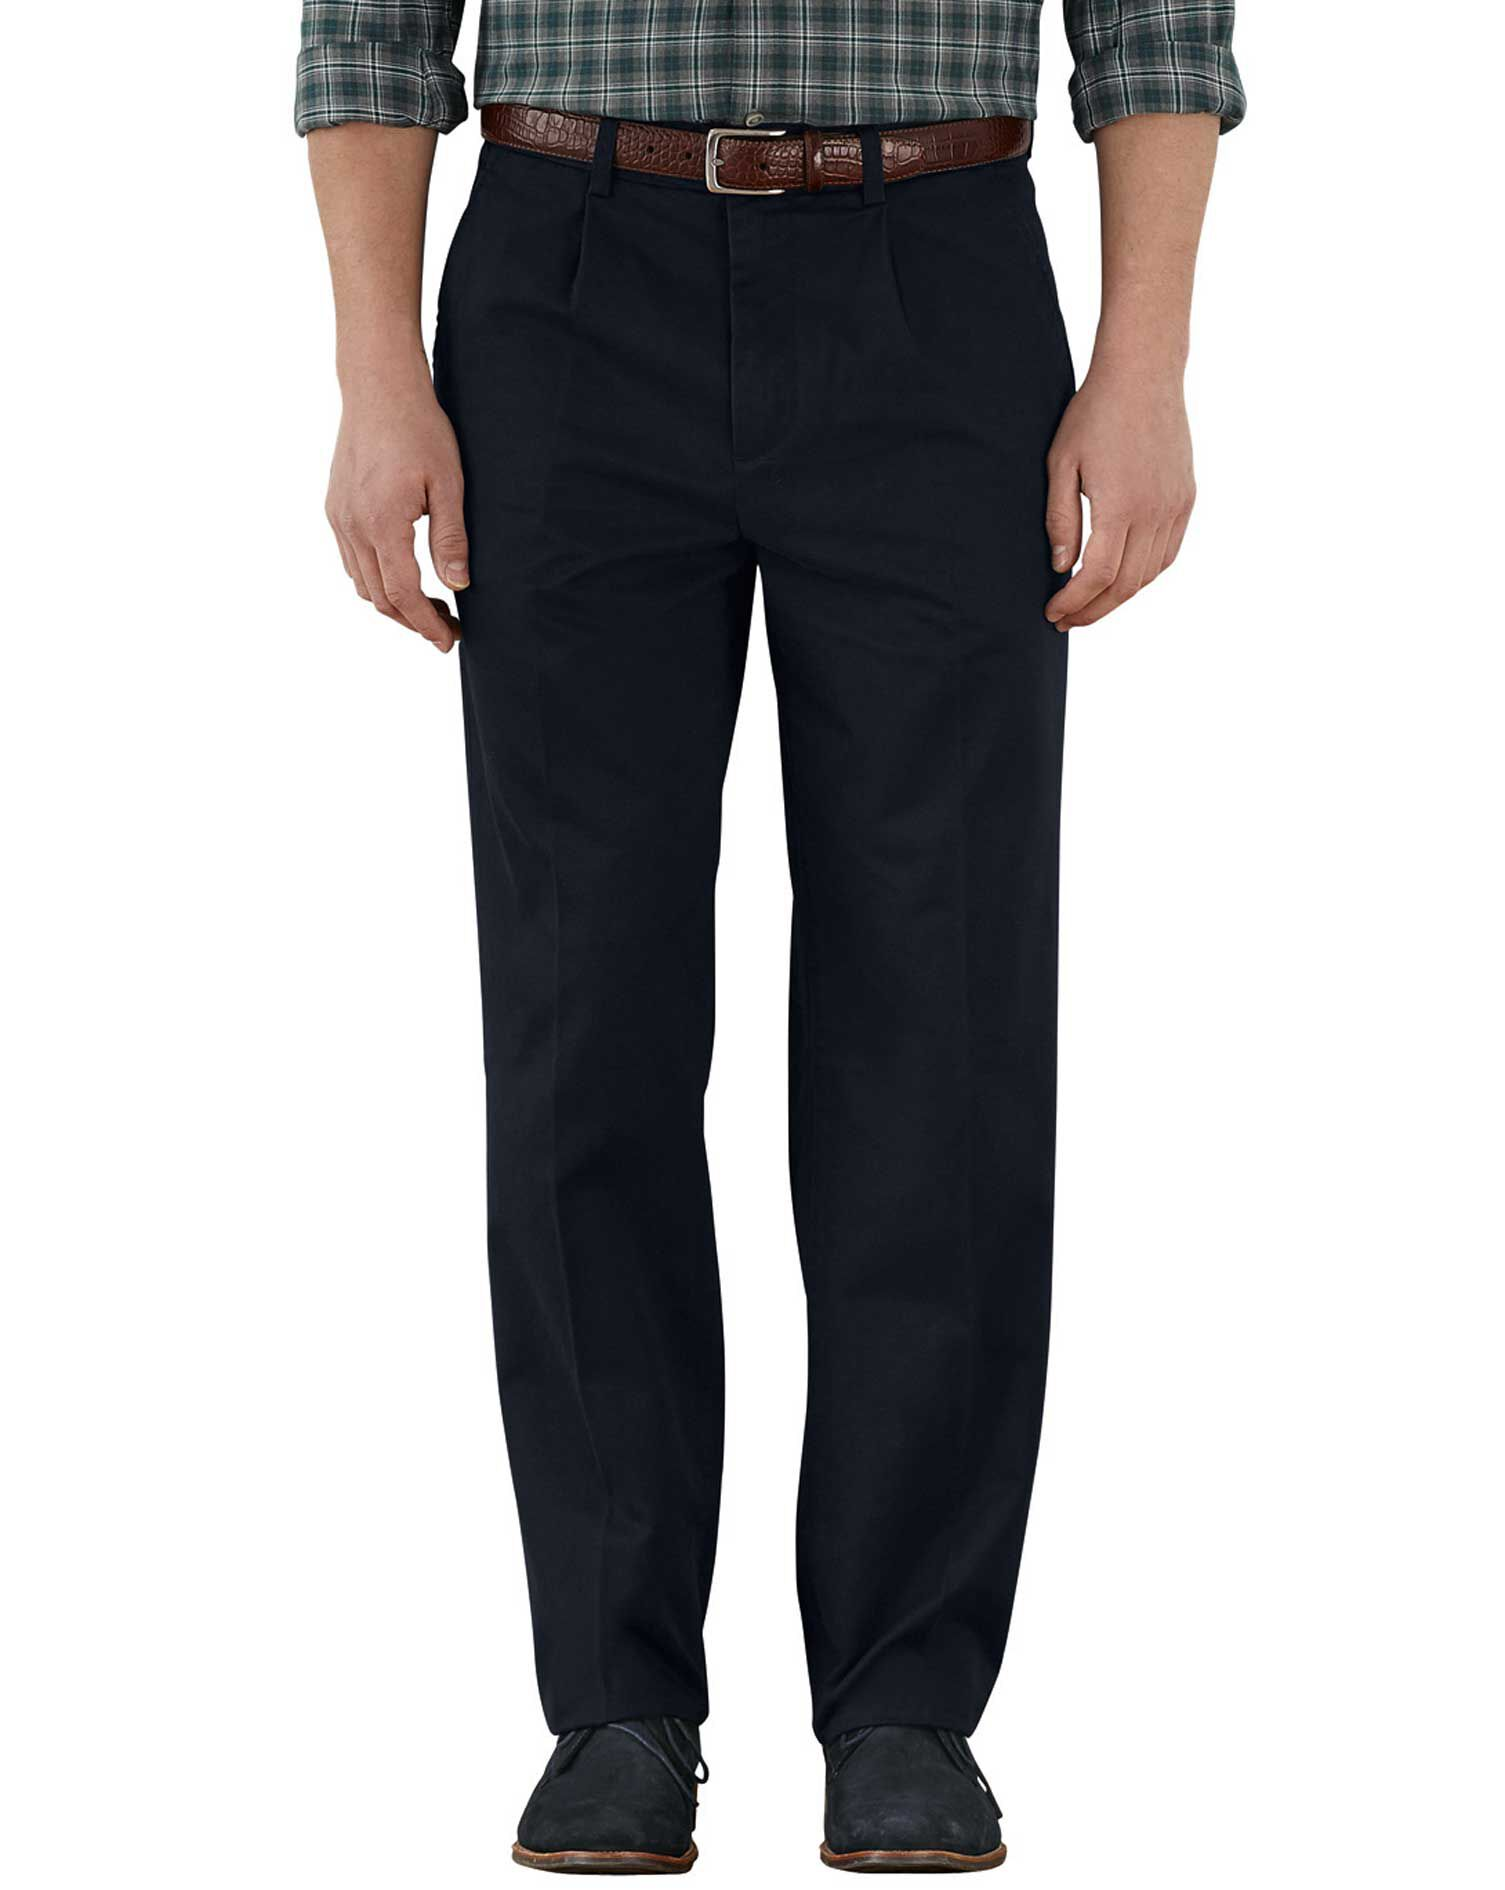 Navy Classic Fit Single Pleat Weekend Cotton Chino Trousers Size W30 L38 by Charles Tyrwhitt